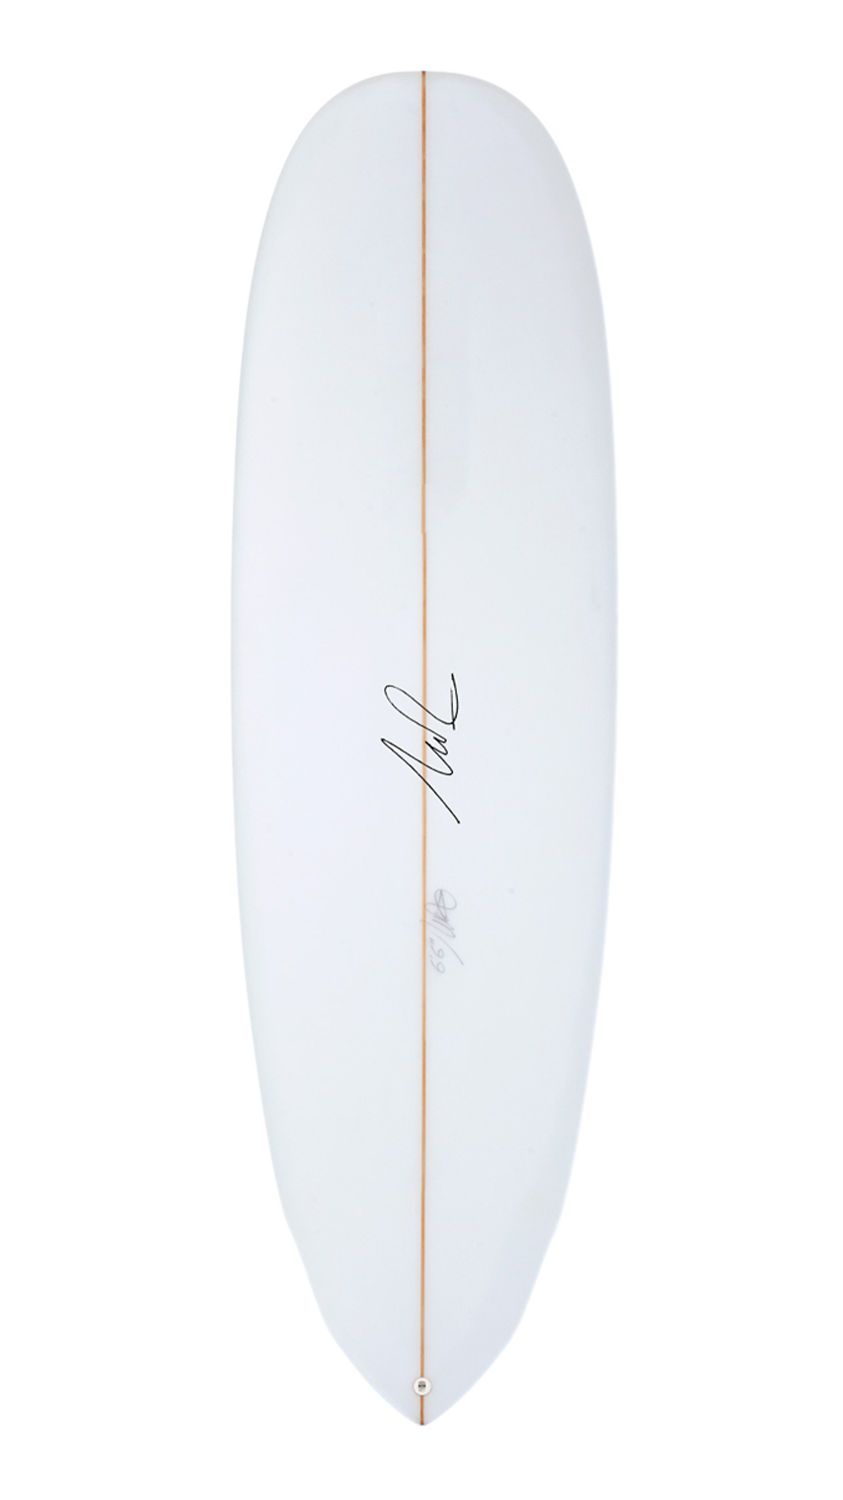 SJ beginner surfboard deck